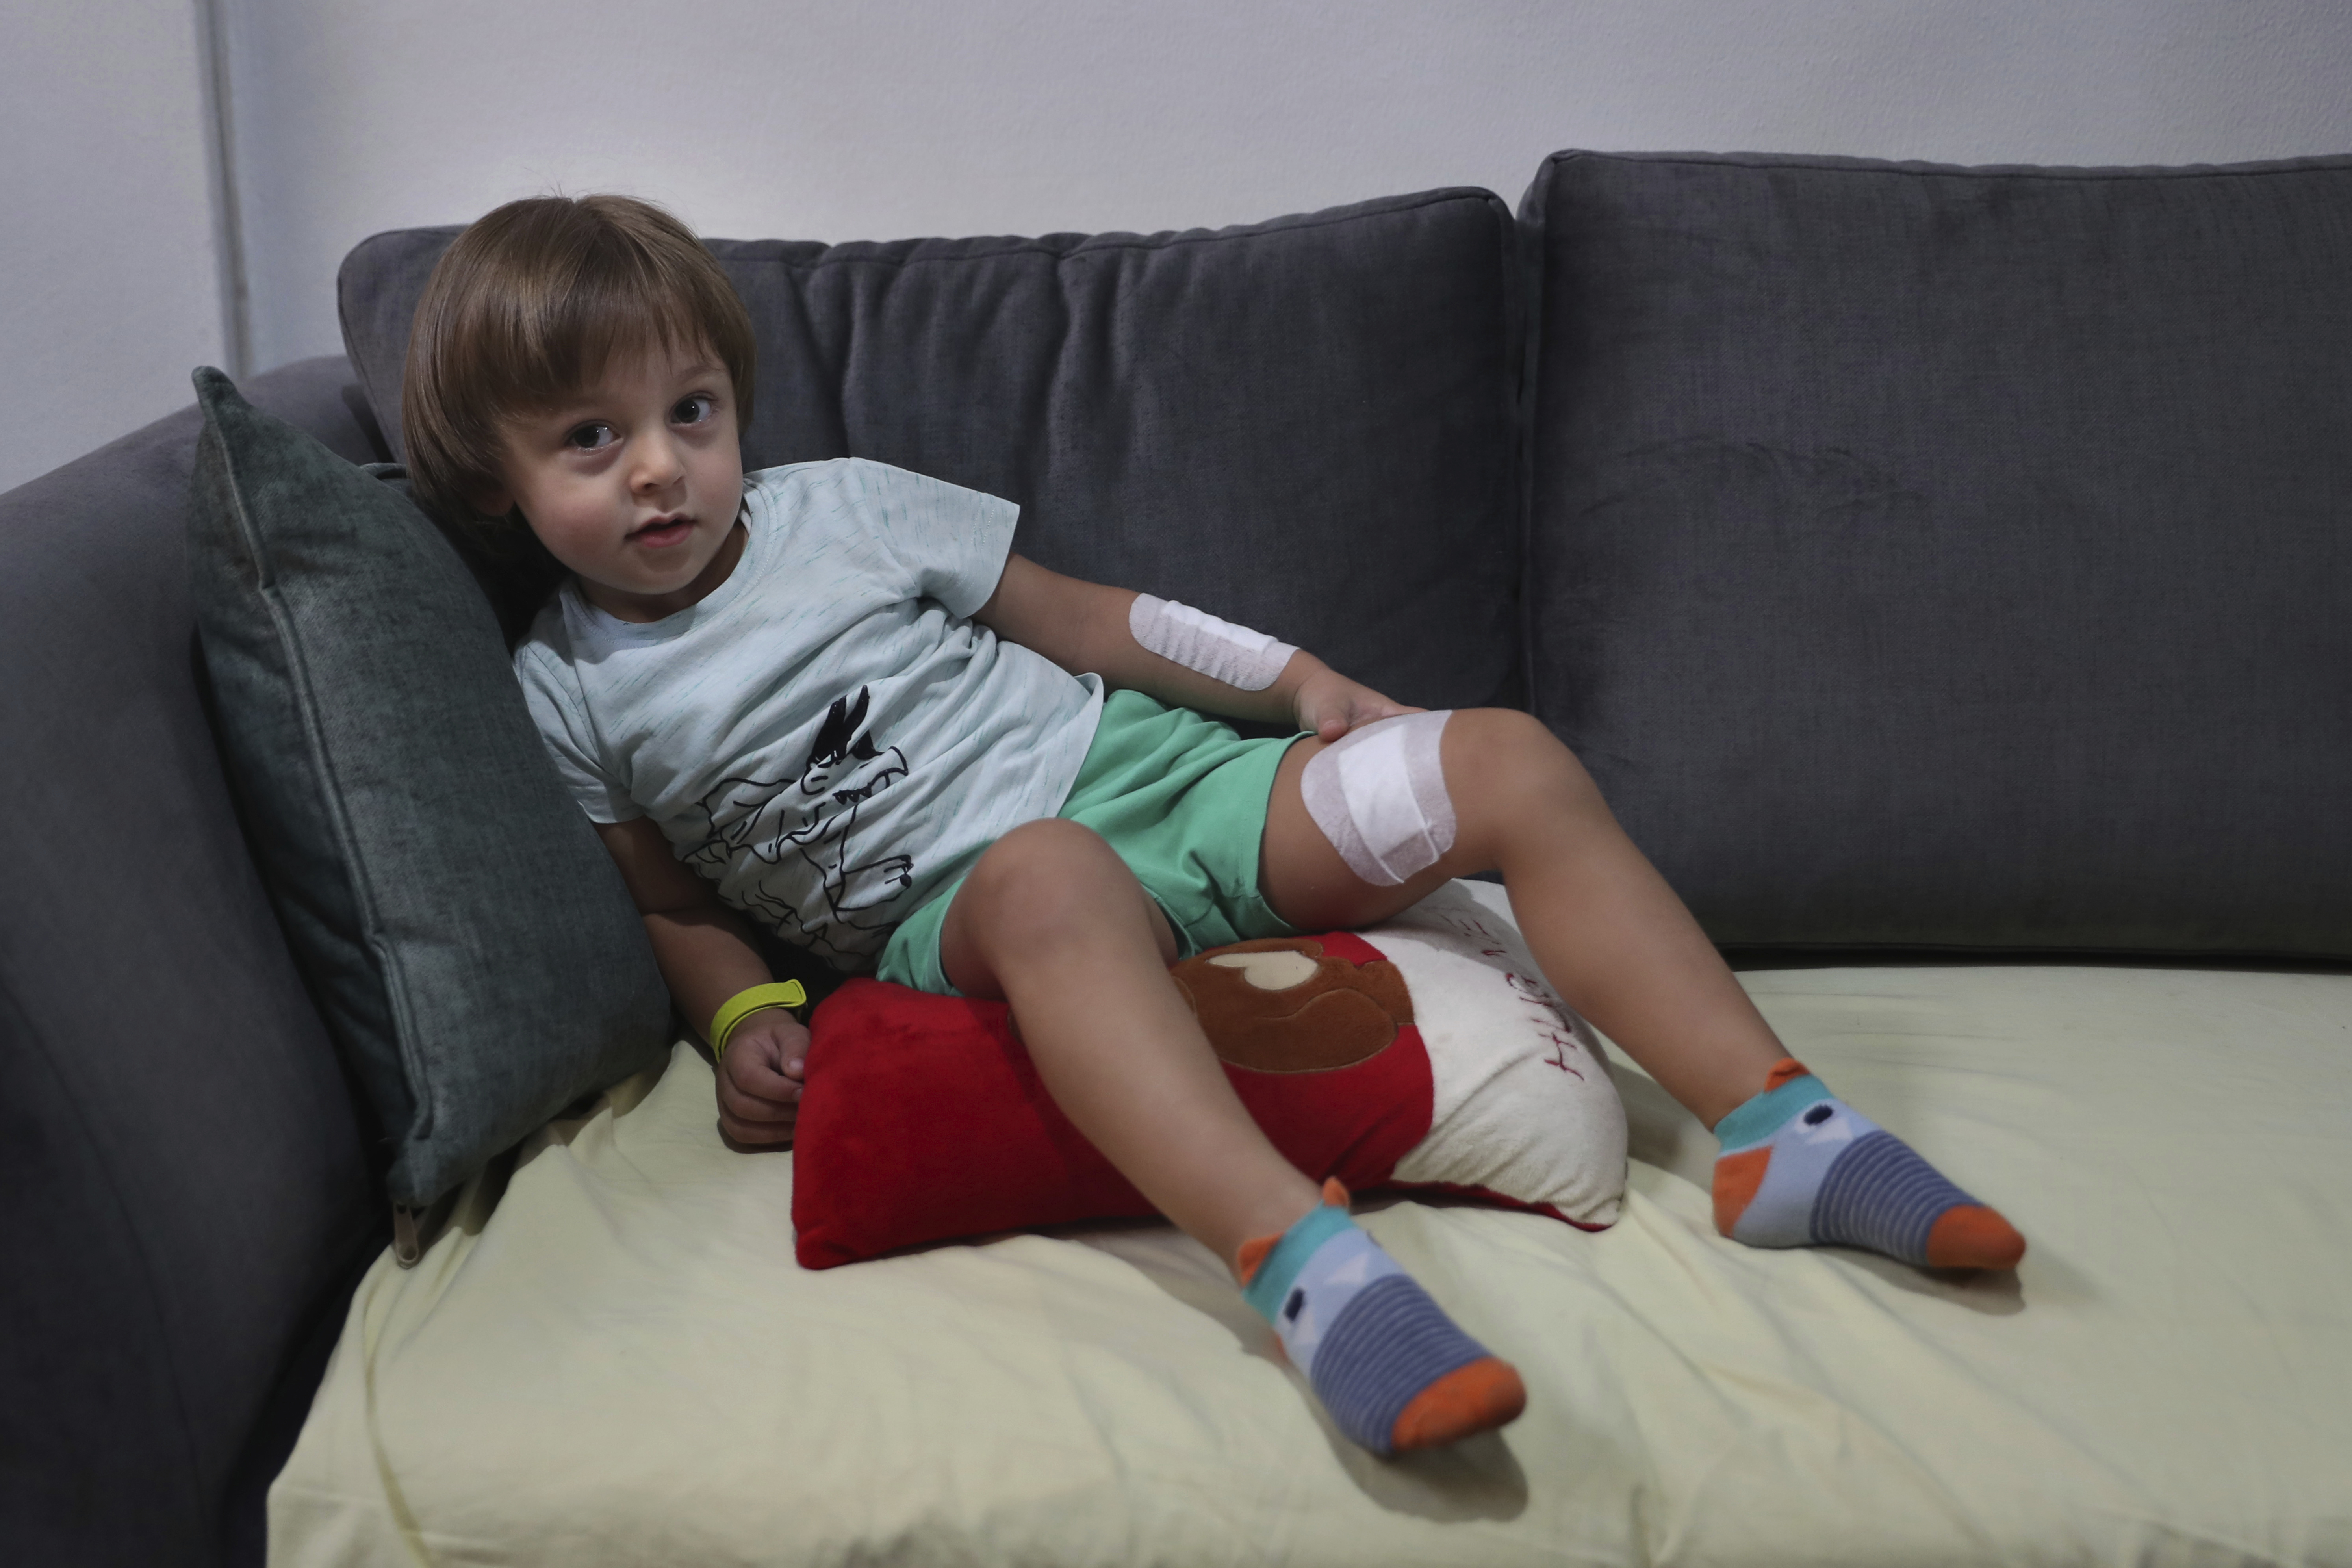 Three-year-old Abed Achi lies on a sofa at his family house in Beirut, Lebanon, Tuesday, Aug. 11, 2020. Abed was playing with his Lego blocks when the huge blast ripped through Beirut, shattering the nearby glass doors. He had cuts on his tiny arms and feet, a head injury, and was taken to the emergency room, where he sat amid other bleeding people. Photo: AP